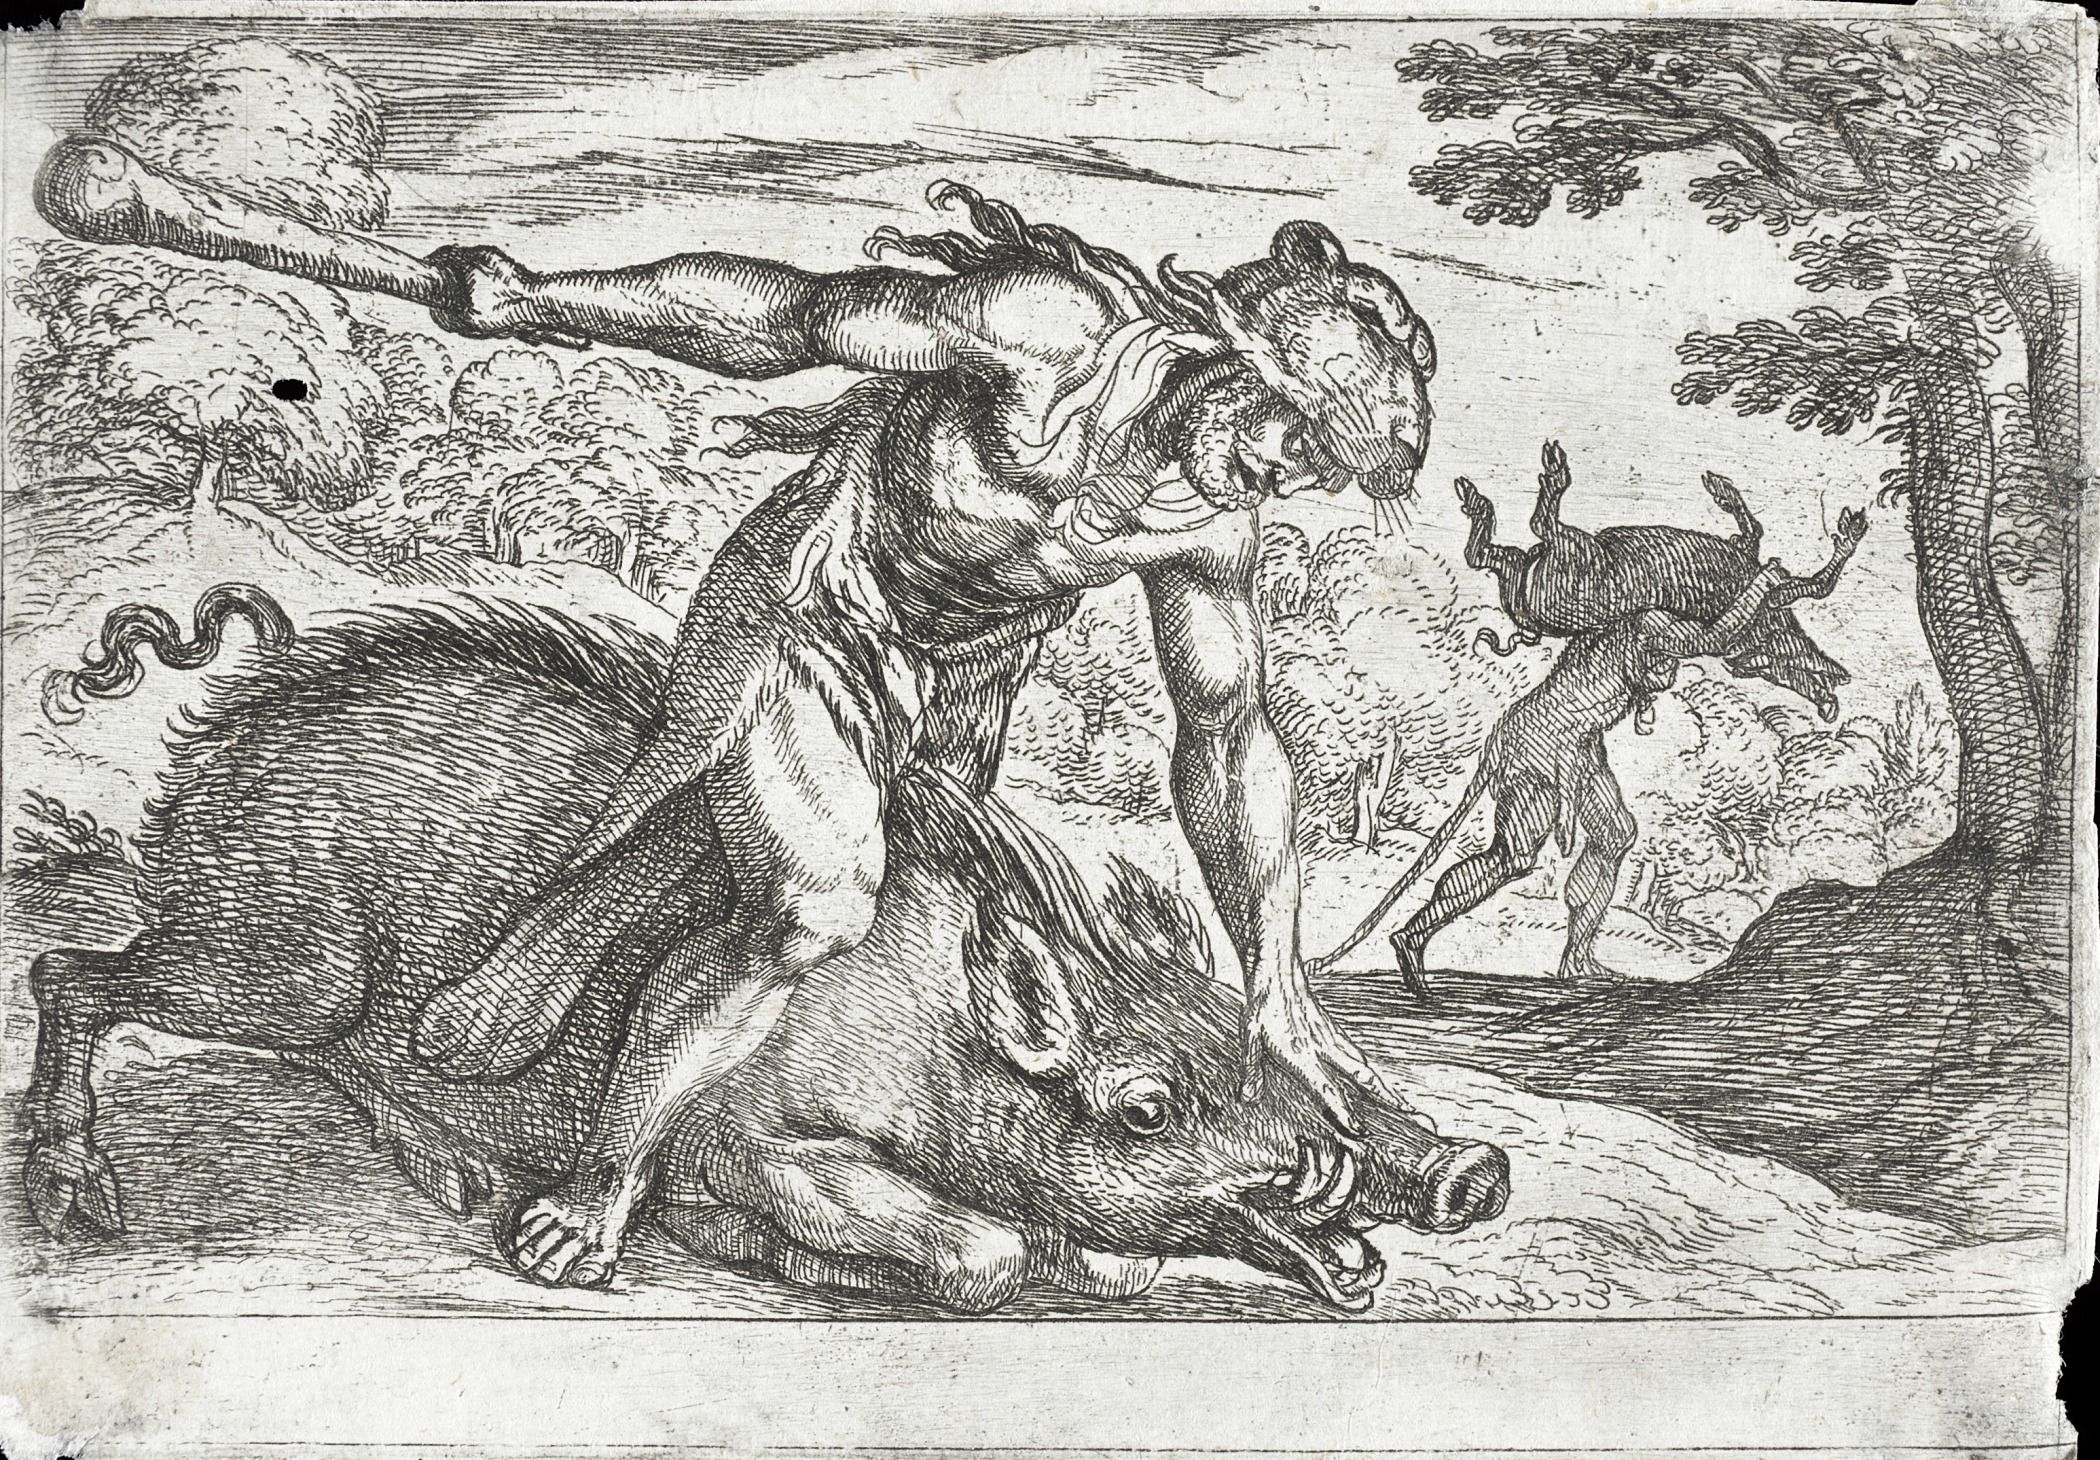 Hercules vs the Erymanthian Boar | art Gallery | Pinterest ...